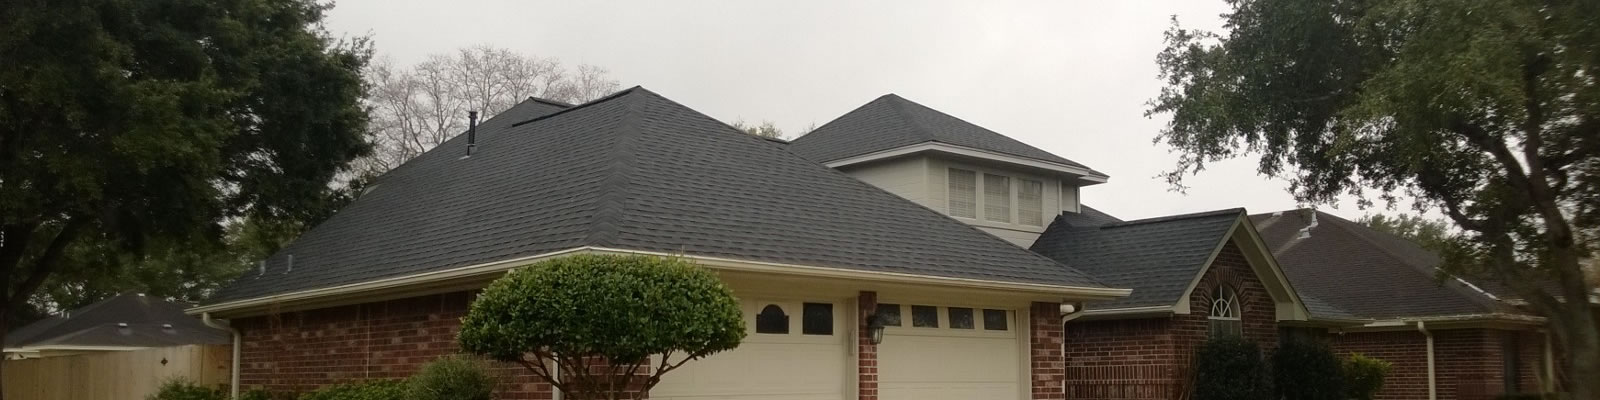 Roofing Contractor in Victoria Texas